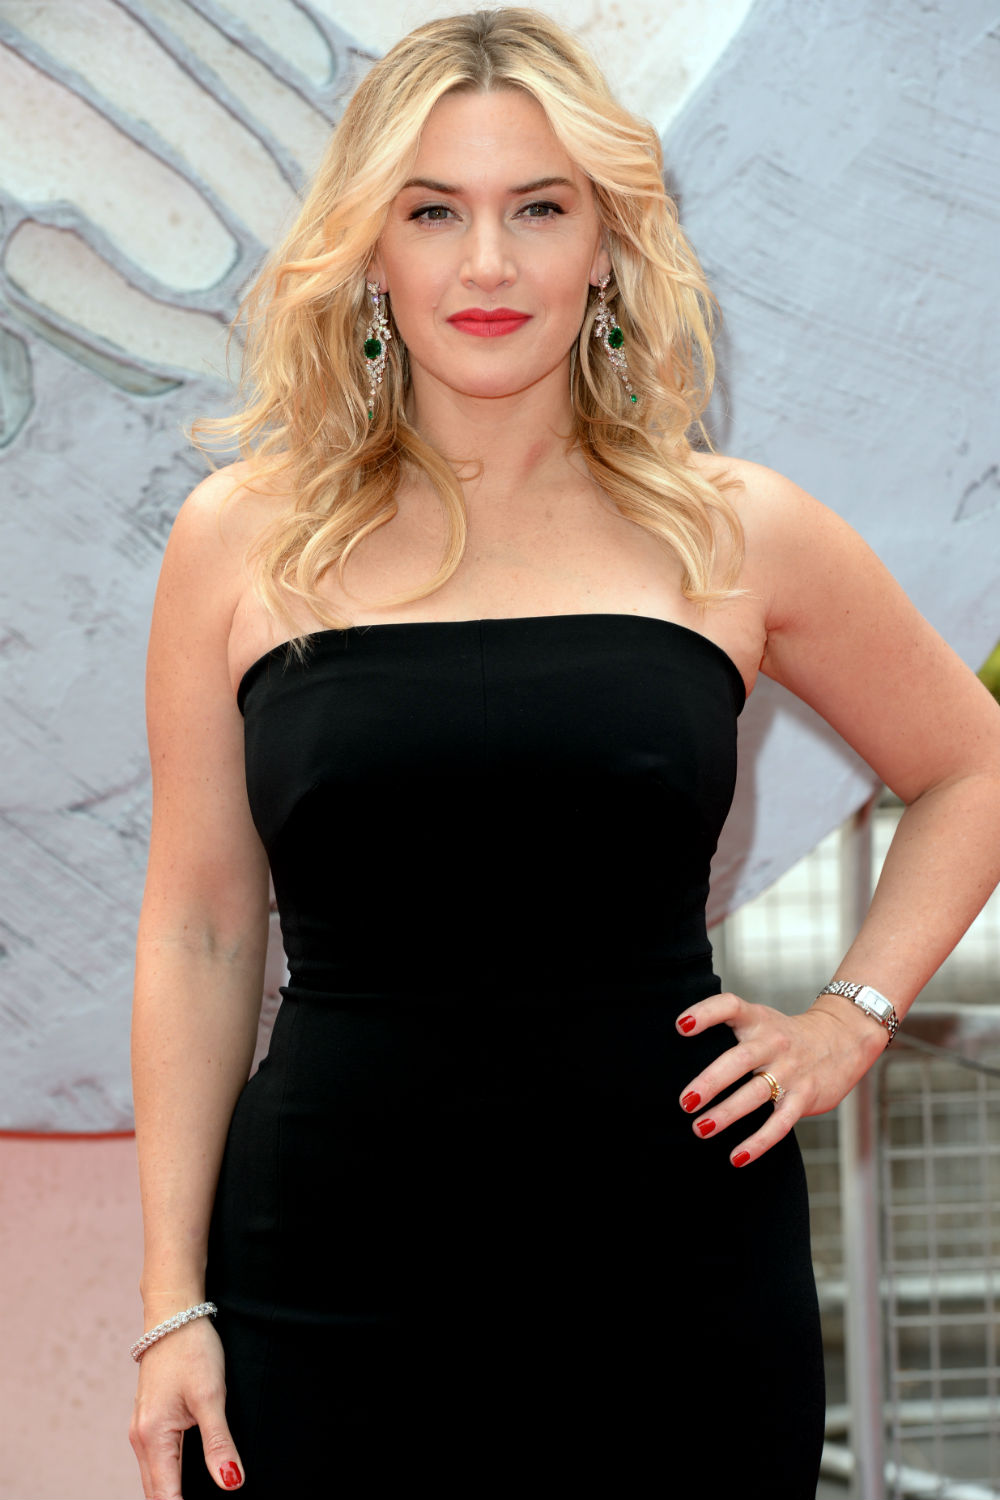 kate winslet says naked titanic picture still haunts her